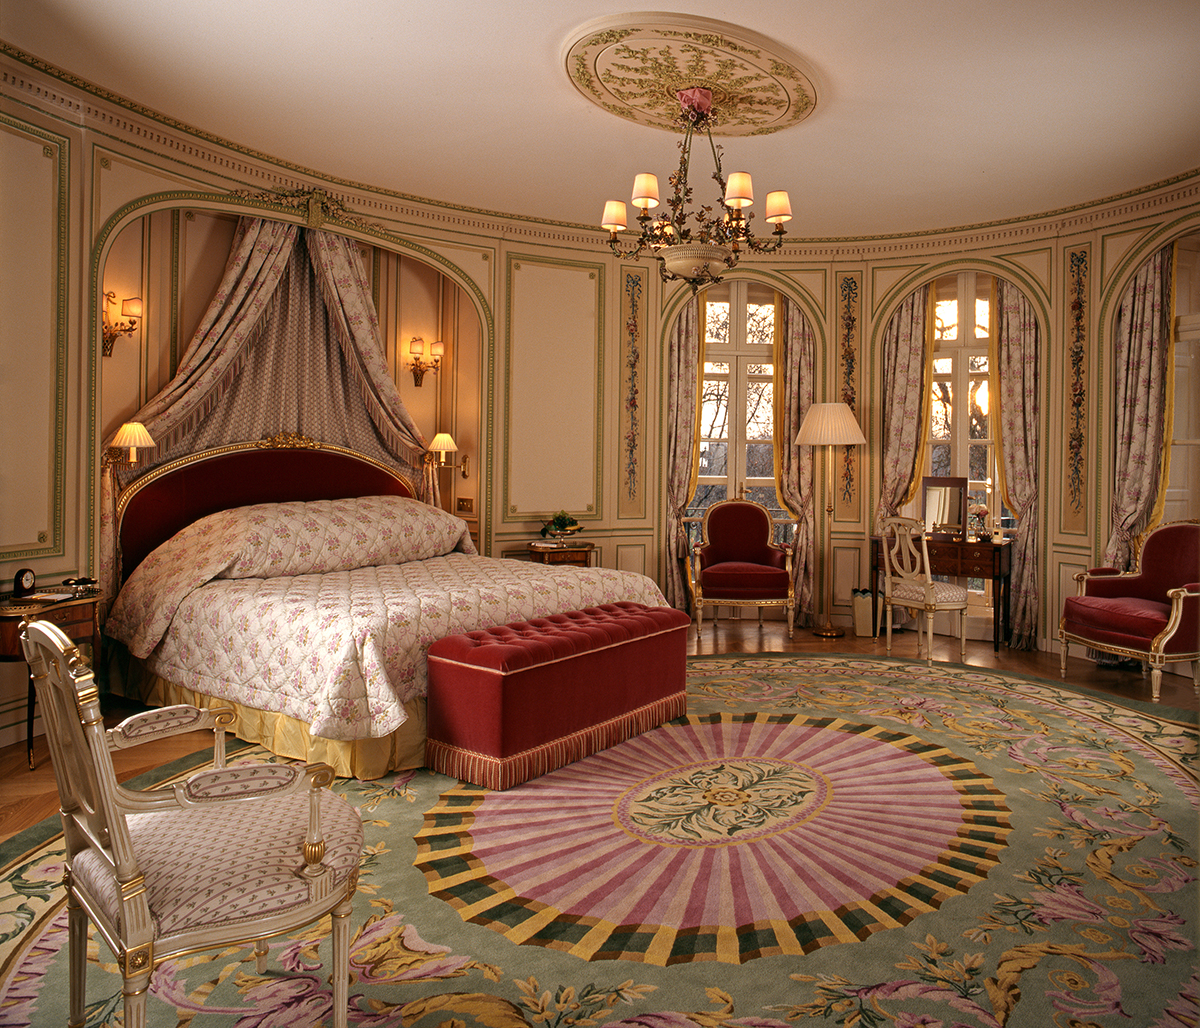 The Royal Suite Bedroom.jpg